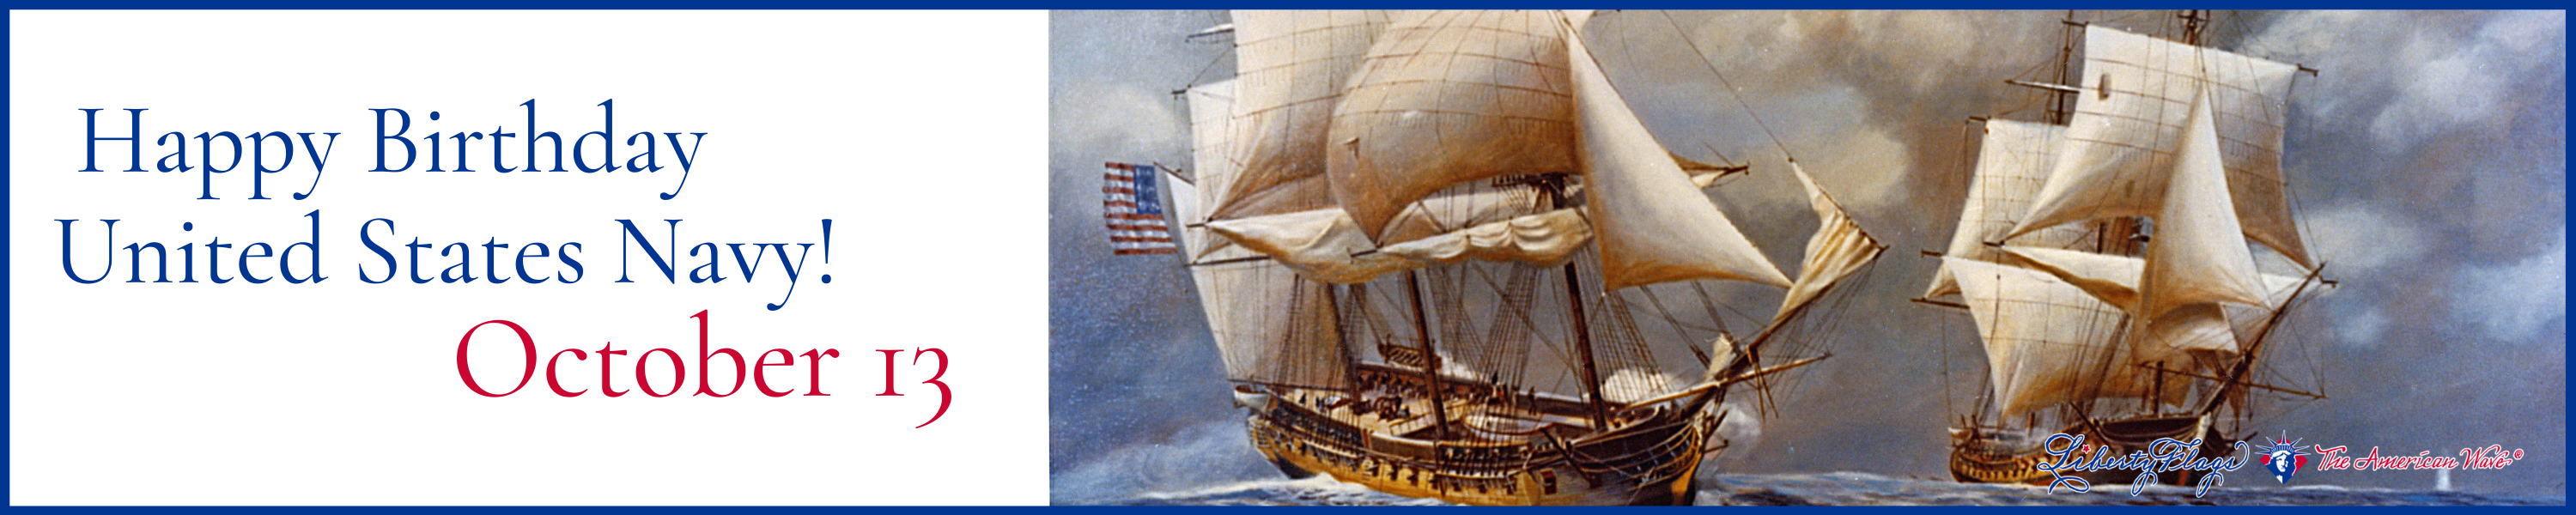 Happy Birthday, U.S. Navy, from LIBERTY FLAGS, The American Wave®